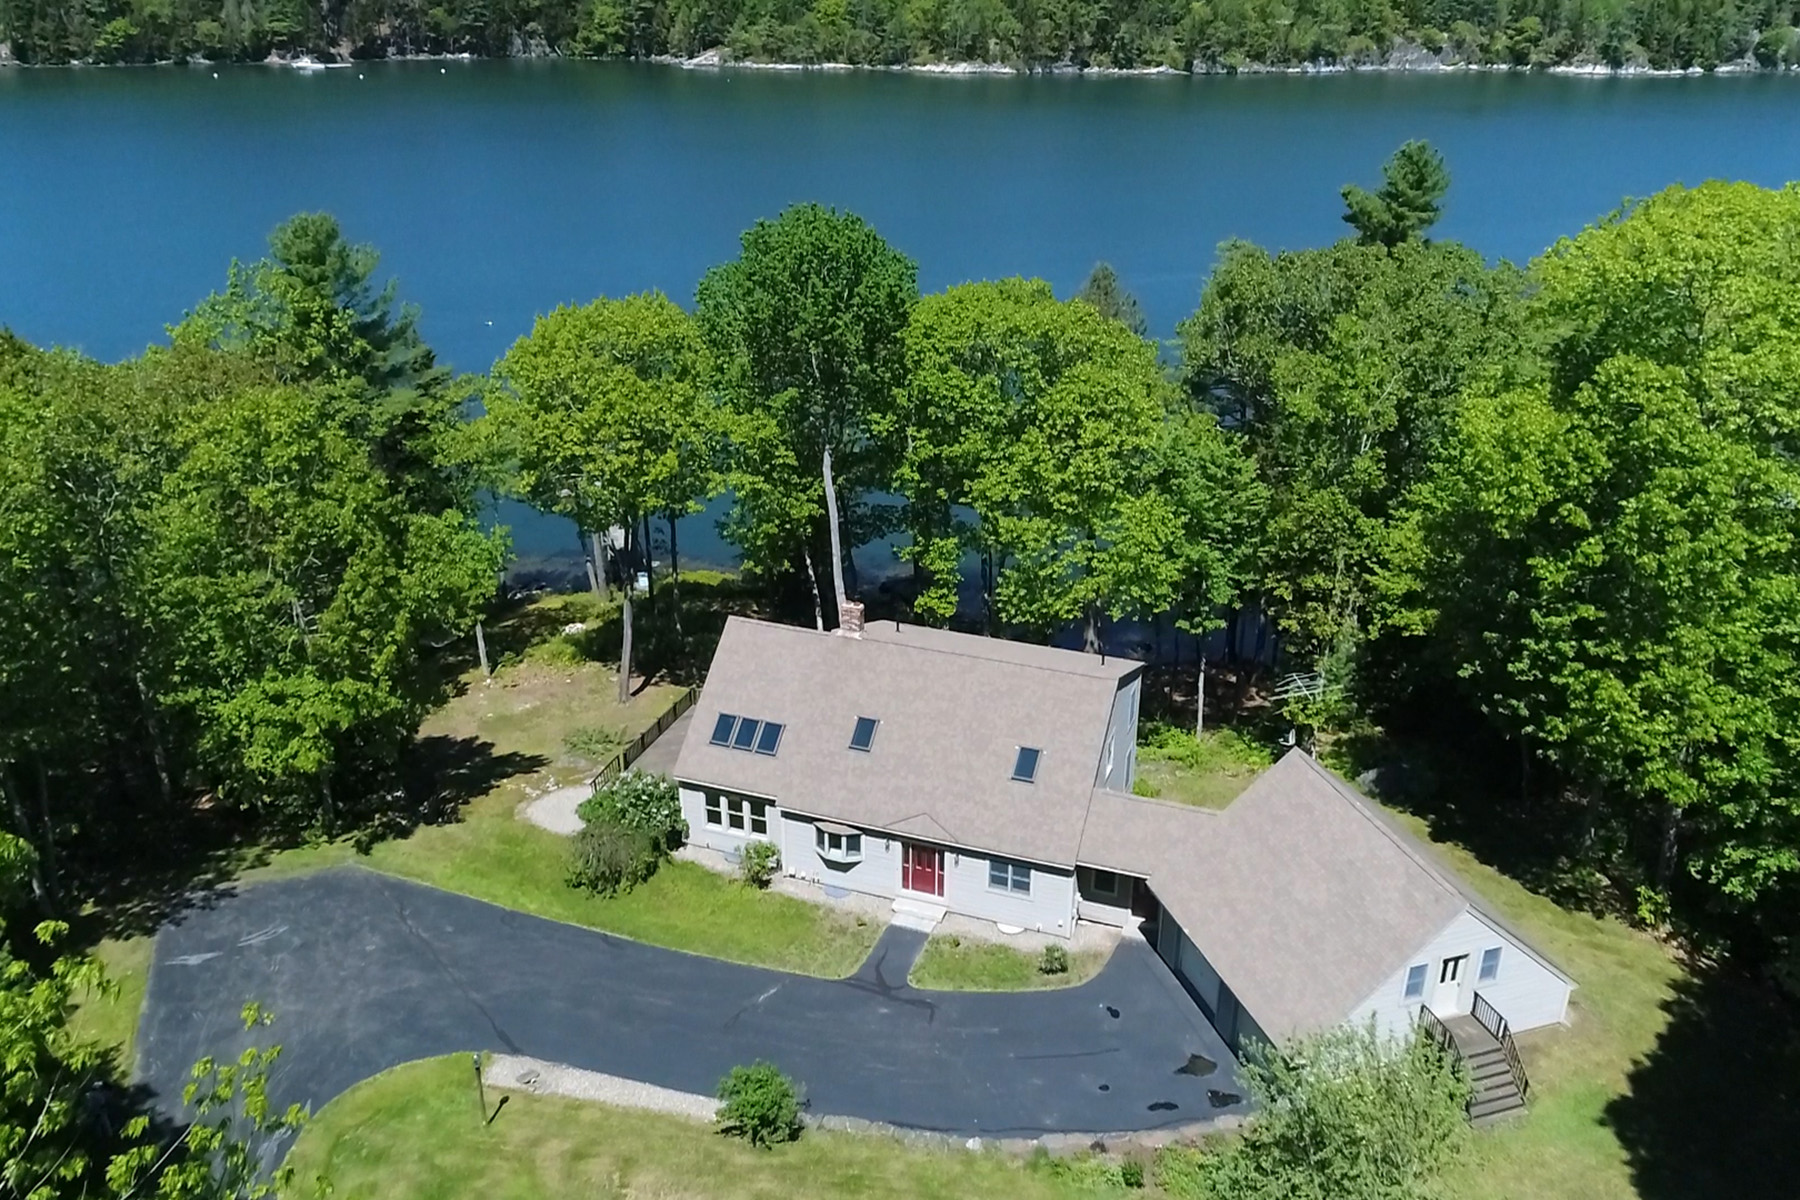 Single Family Home for Sale at 37 Webb Road, Edgecomb Edgecomb, Maine 04556 United States